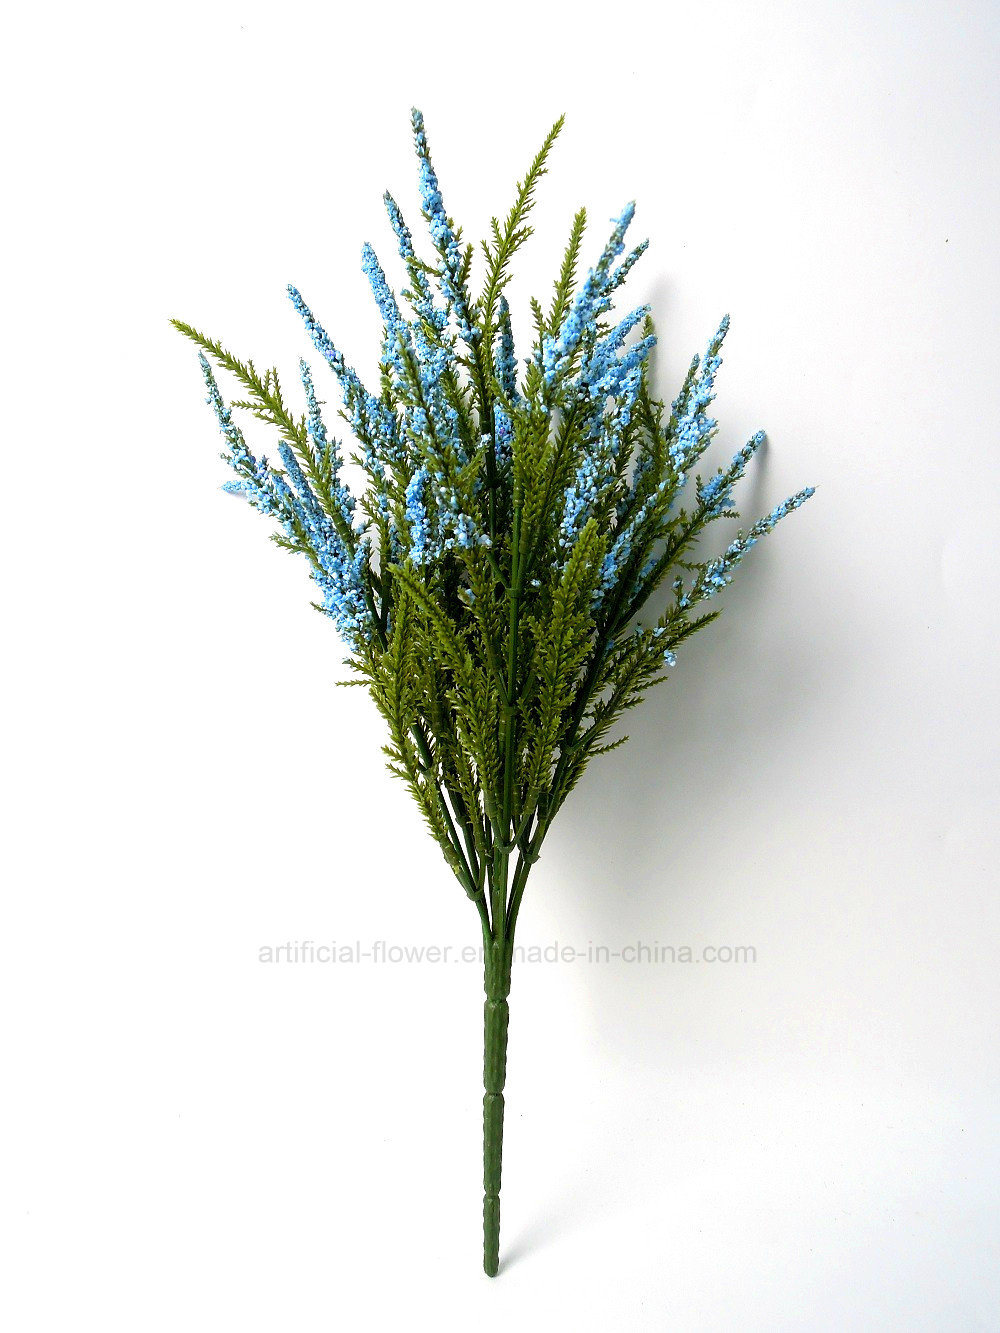 Artificial Fluffy Pine Bush with Colourful Flower X 7 for Decoration